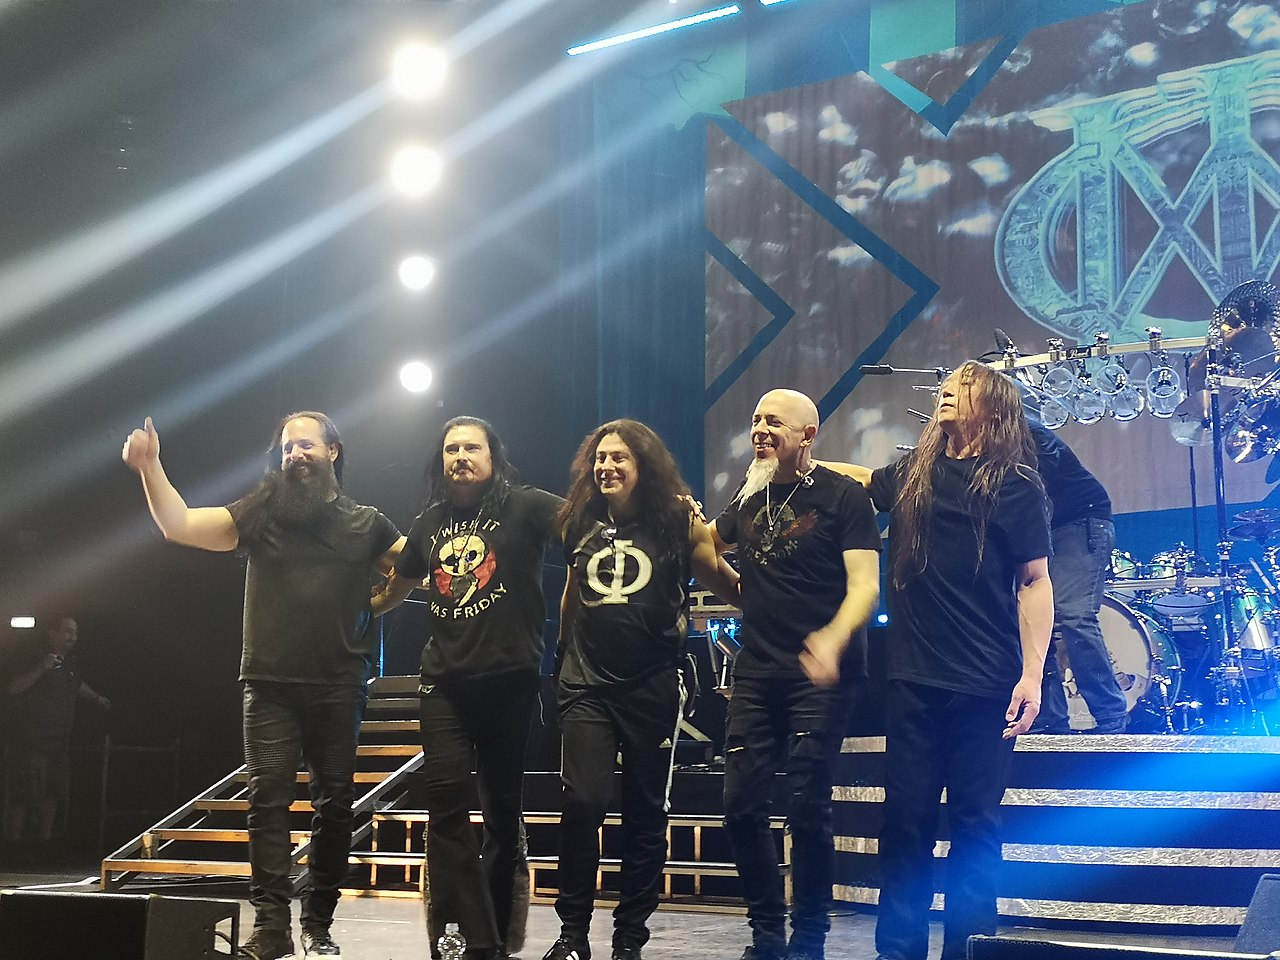 File:Dream Theater live at Mediolanum Forum, Assago - February 12th, 2020.jpg - Wikipedia